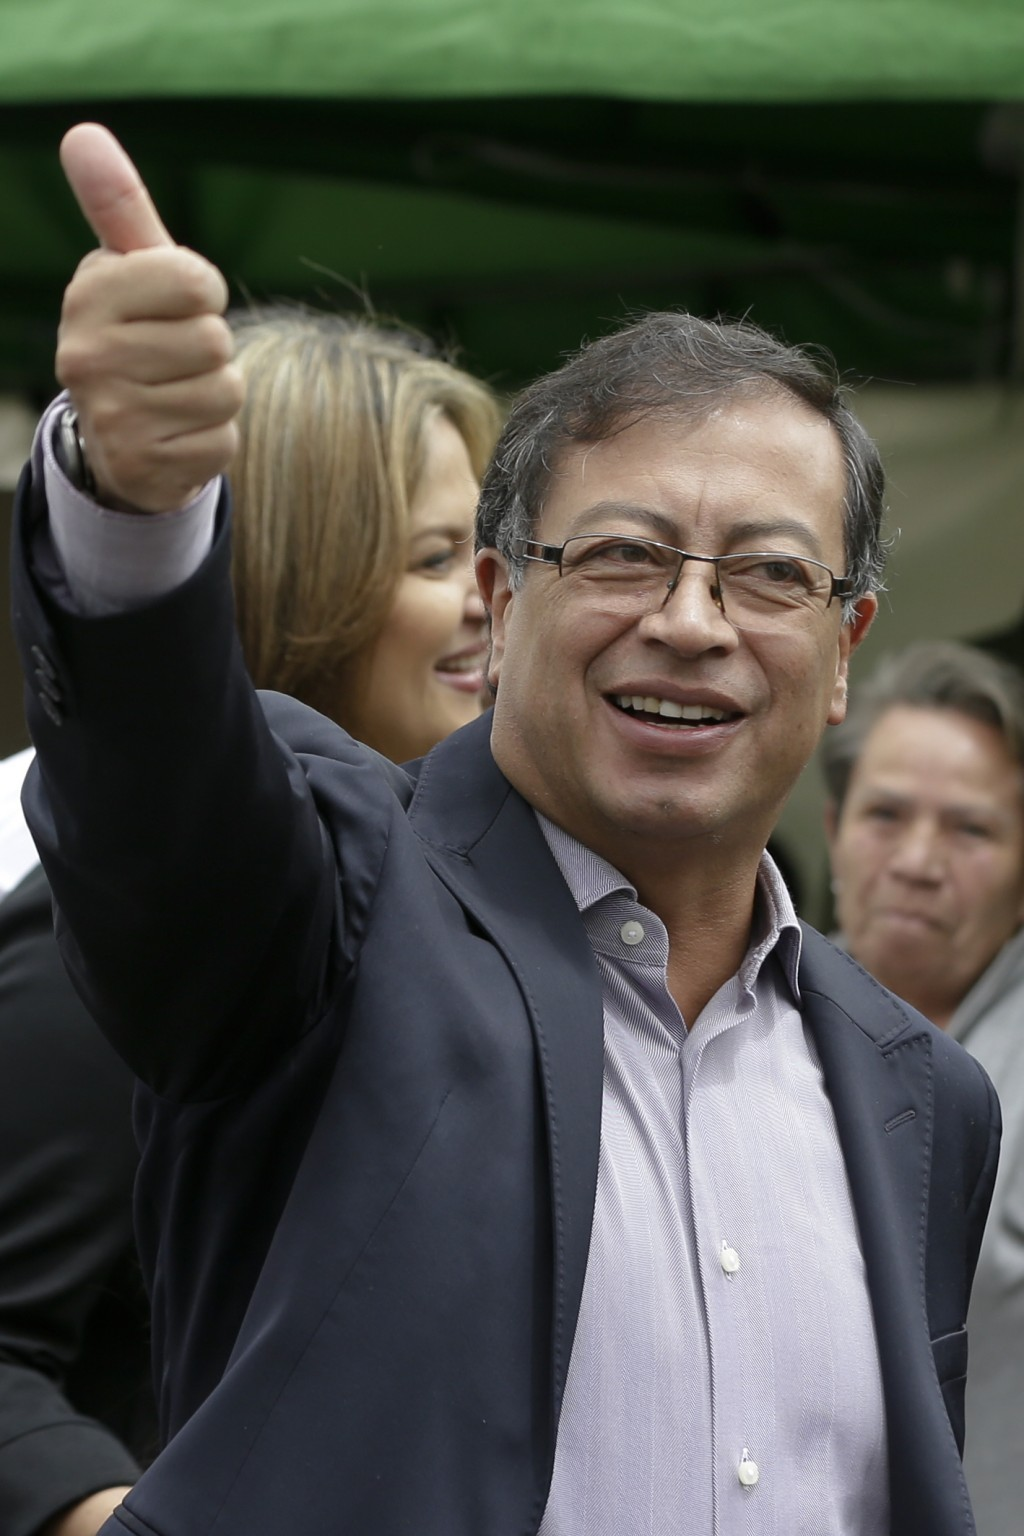 Gustavo Petro, presidential candidate for Colombia Humana, gives a thumbs up before voting in the presidential election in Bogota, Colombia, Sunday, M...